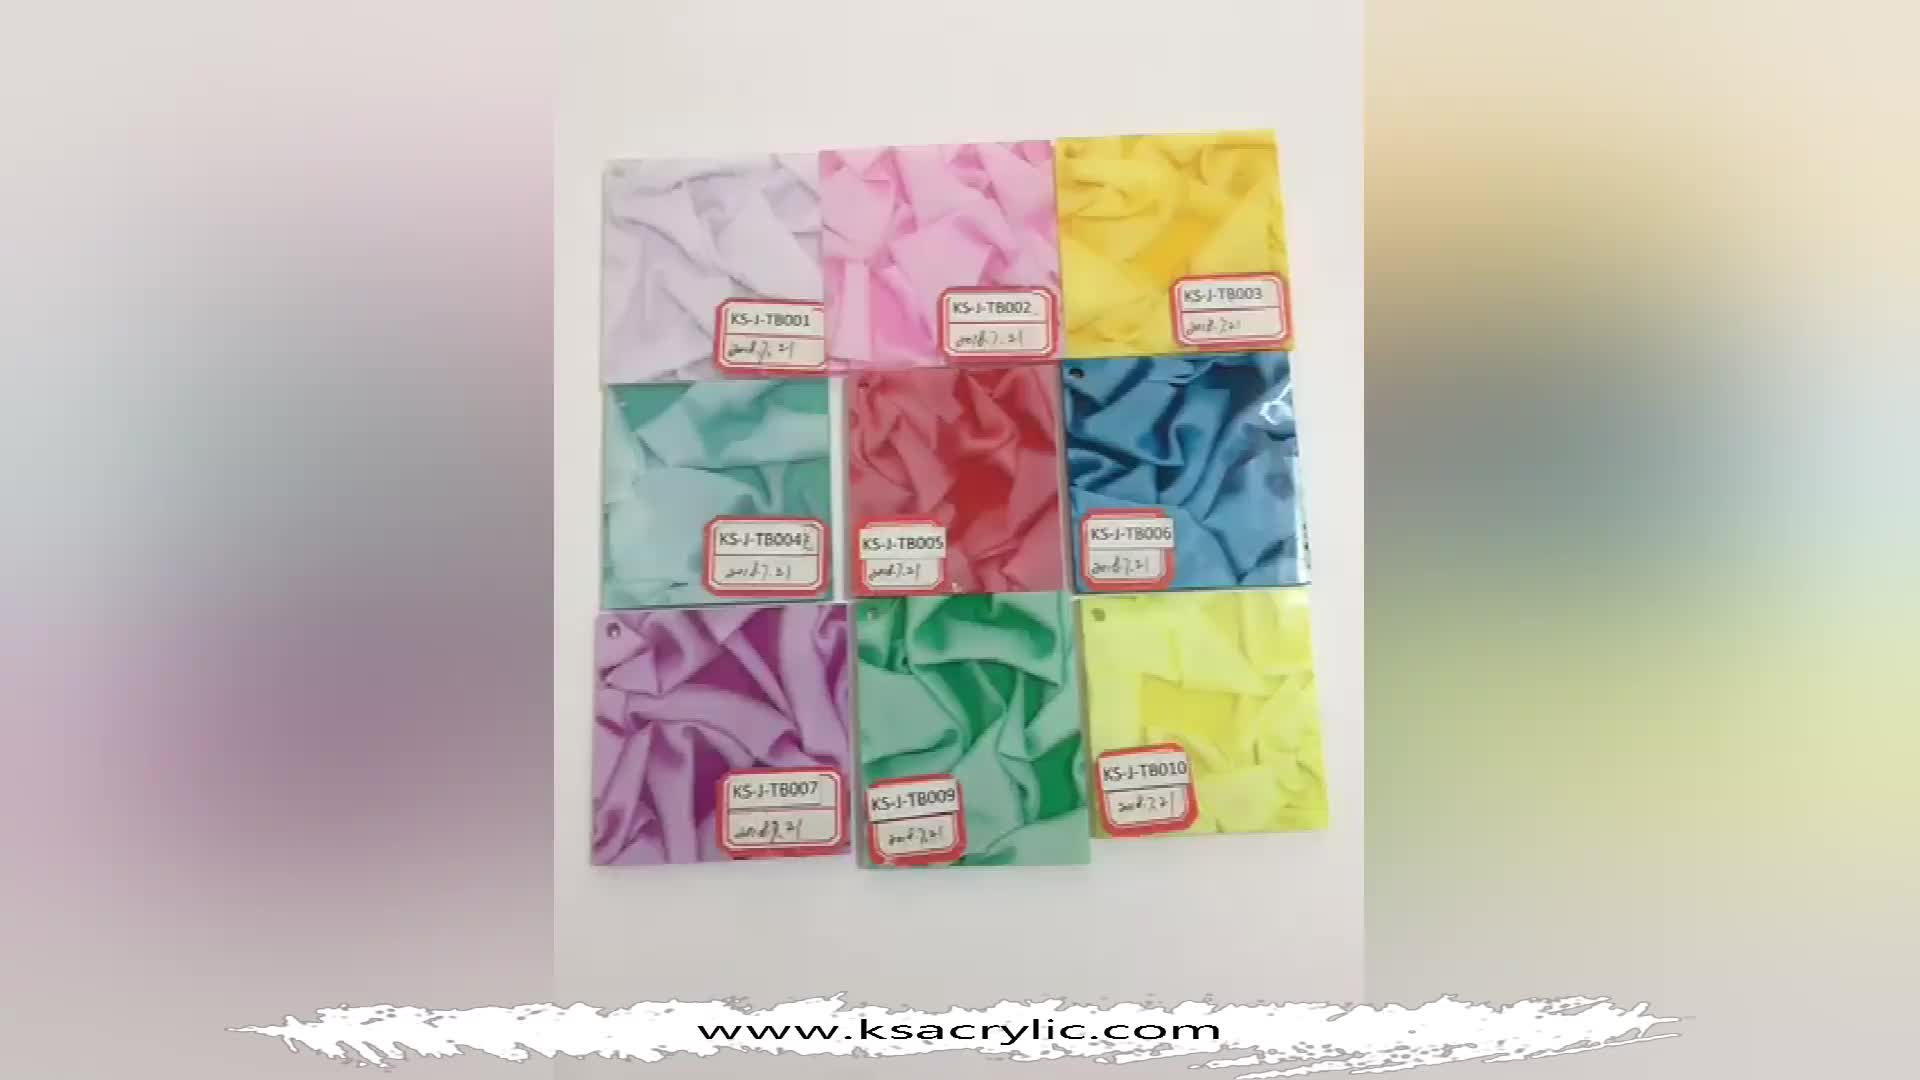 Kingsign fancy decorated flowers and fabric pattern acrylic sheet